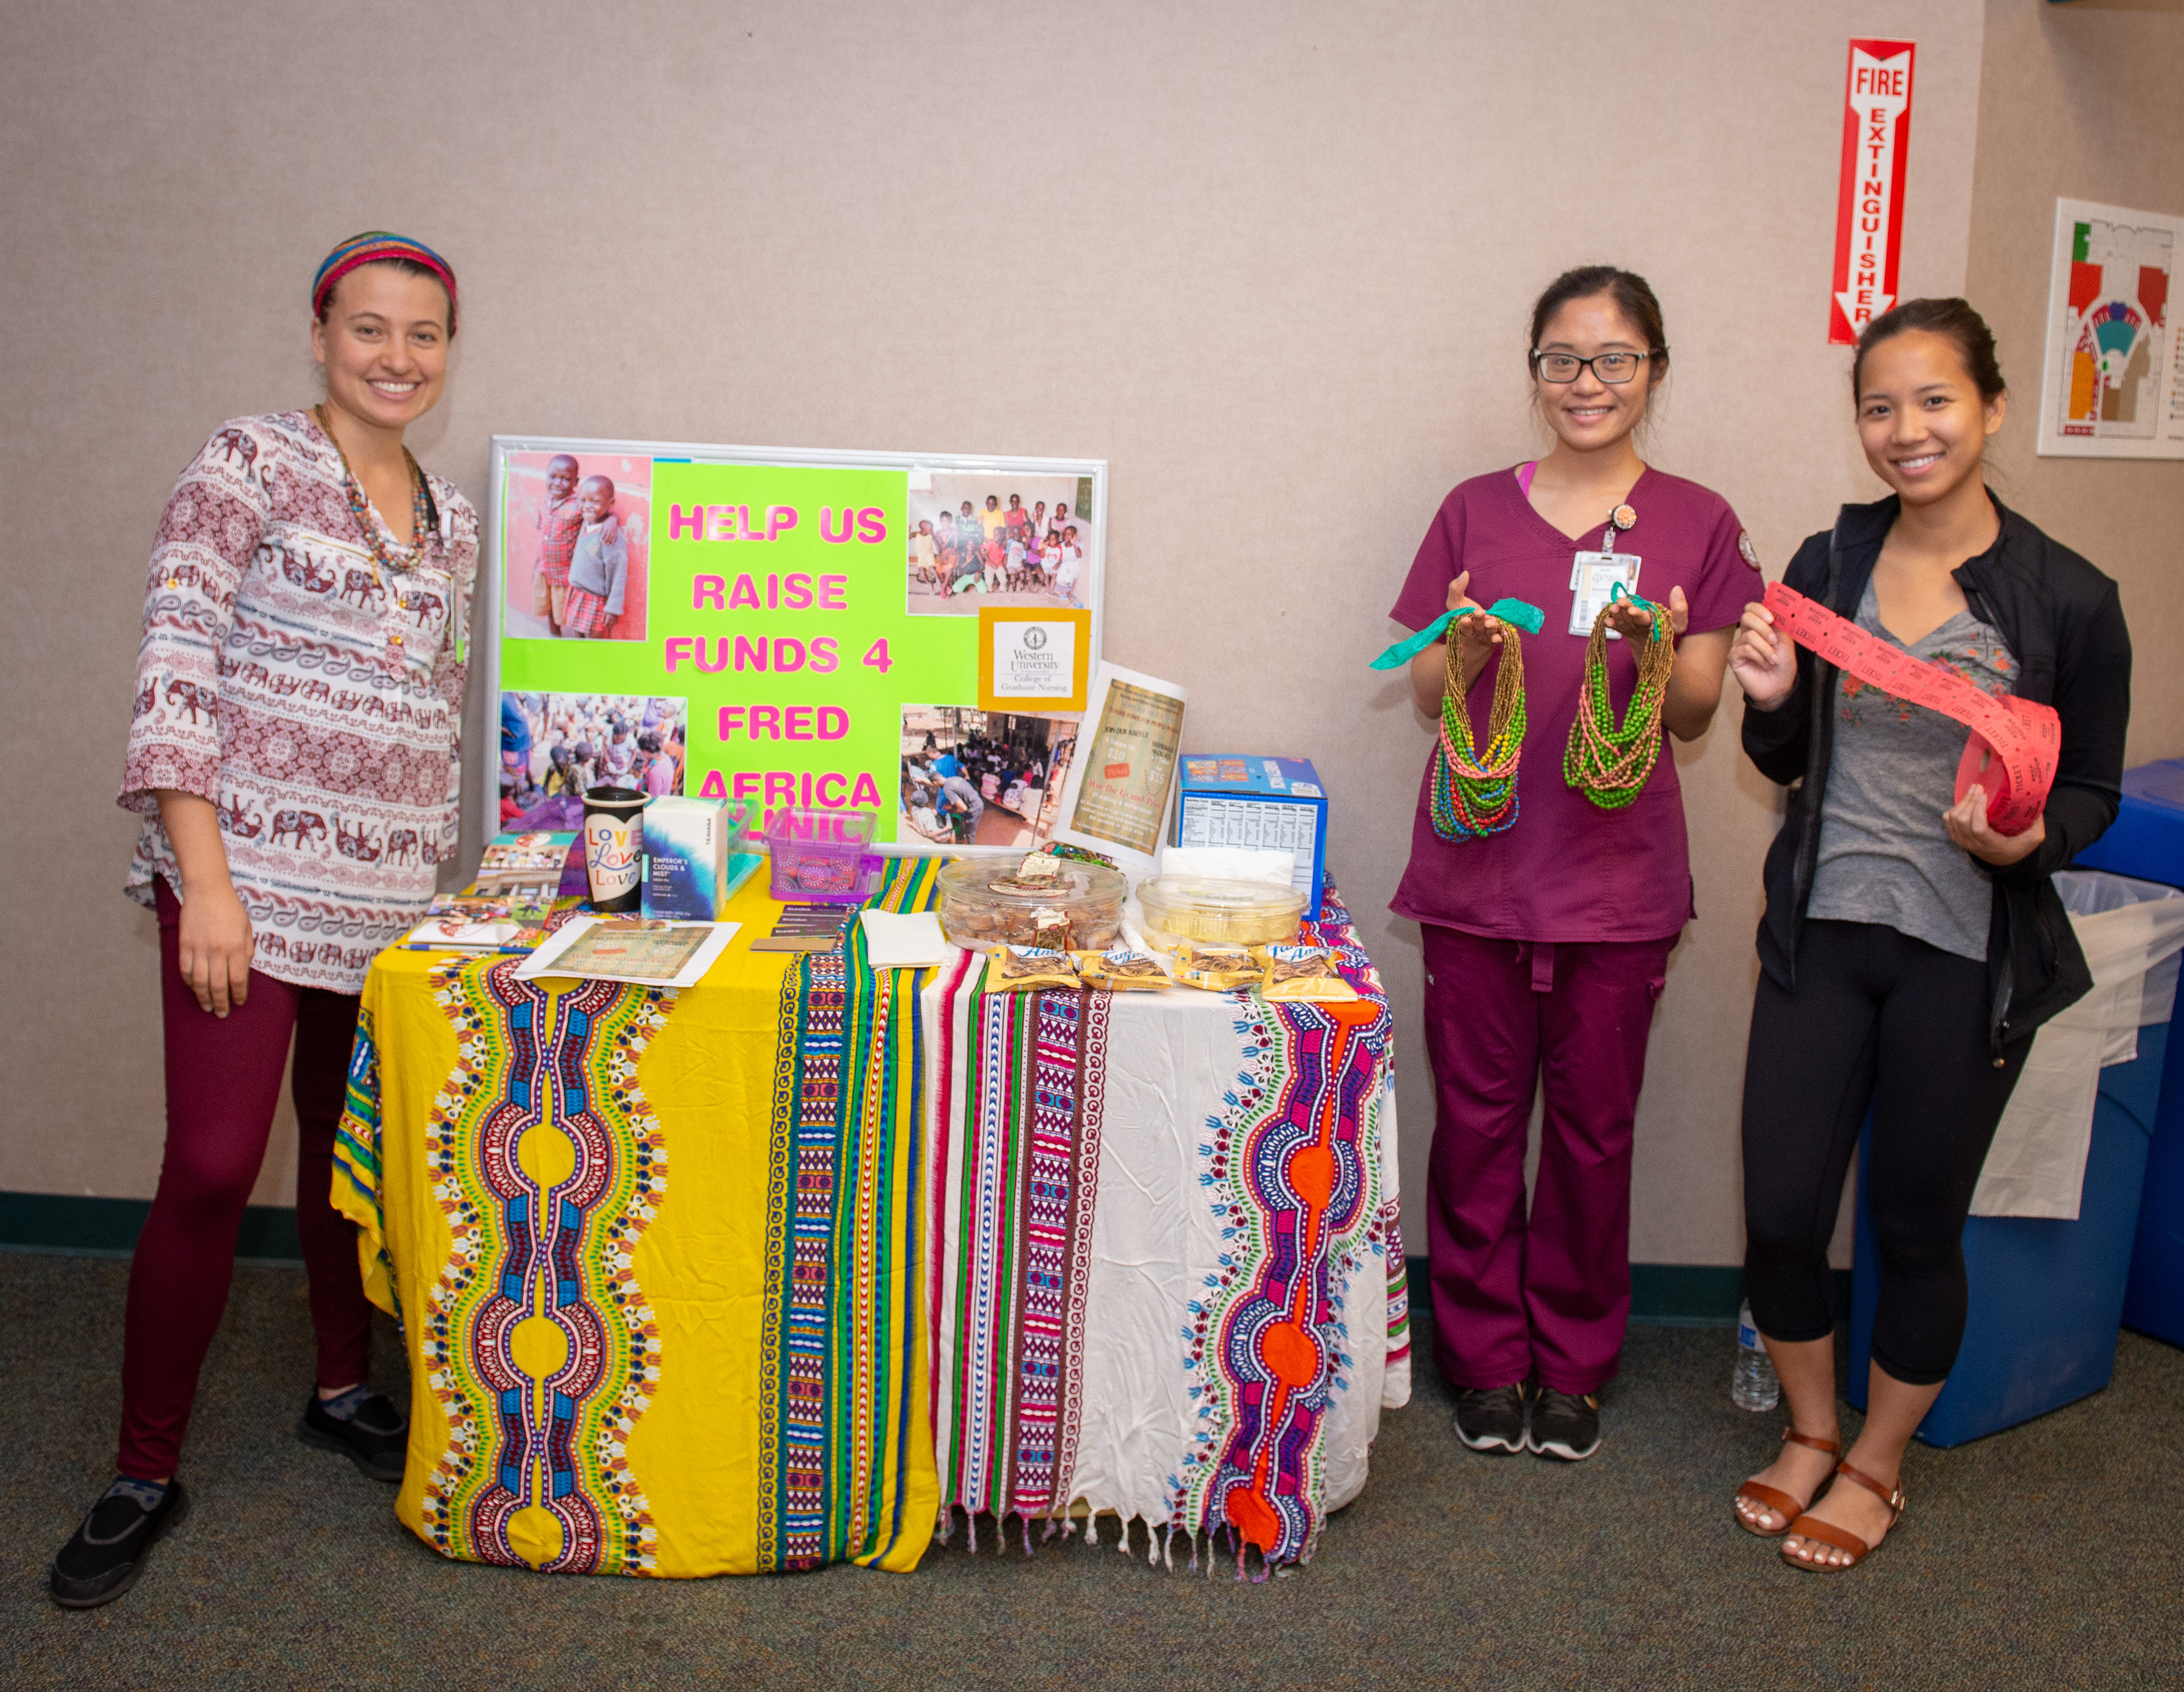 Nursing students raising funds to host mobile medical clinic in Africa